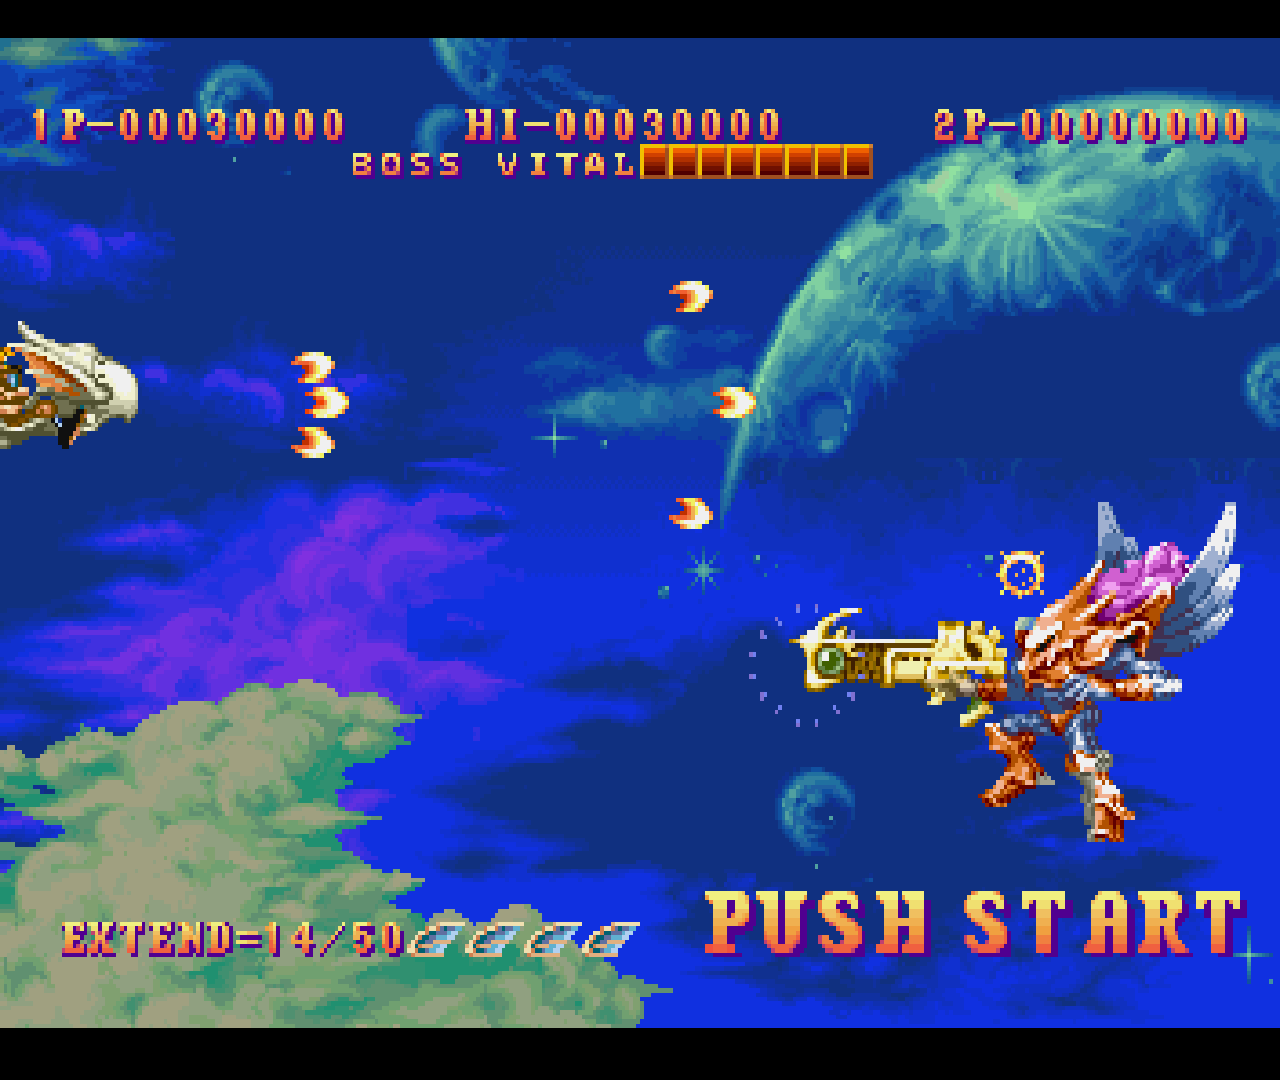 Figure 33 - Chariot Arcade Shooter